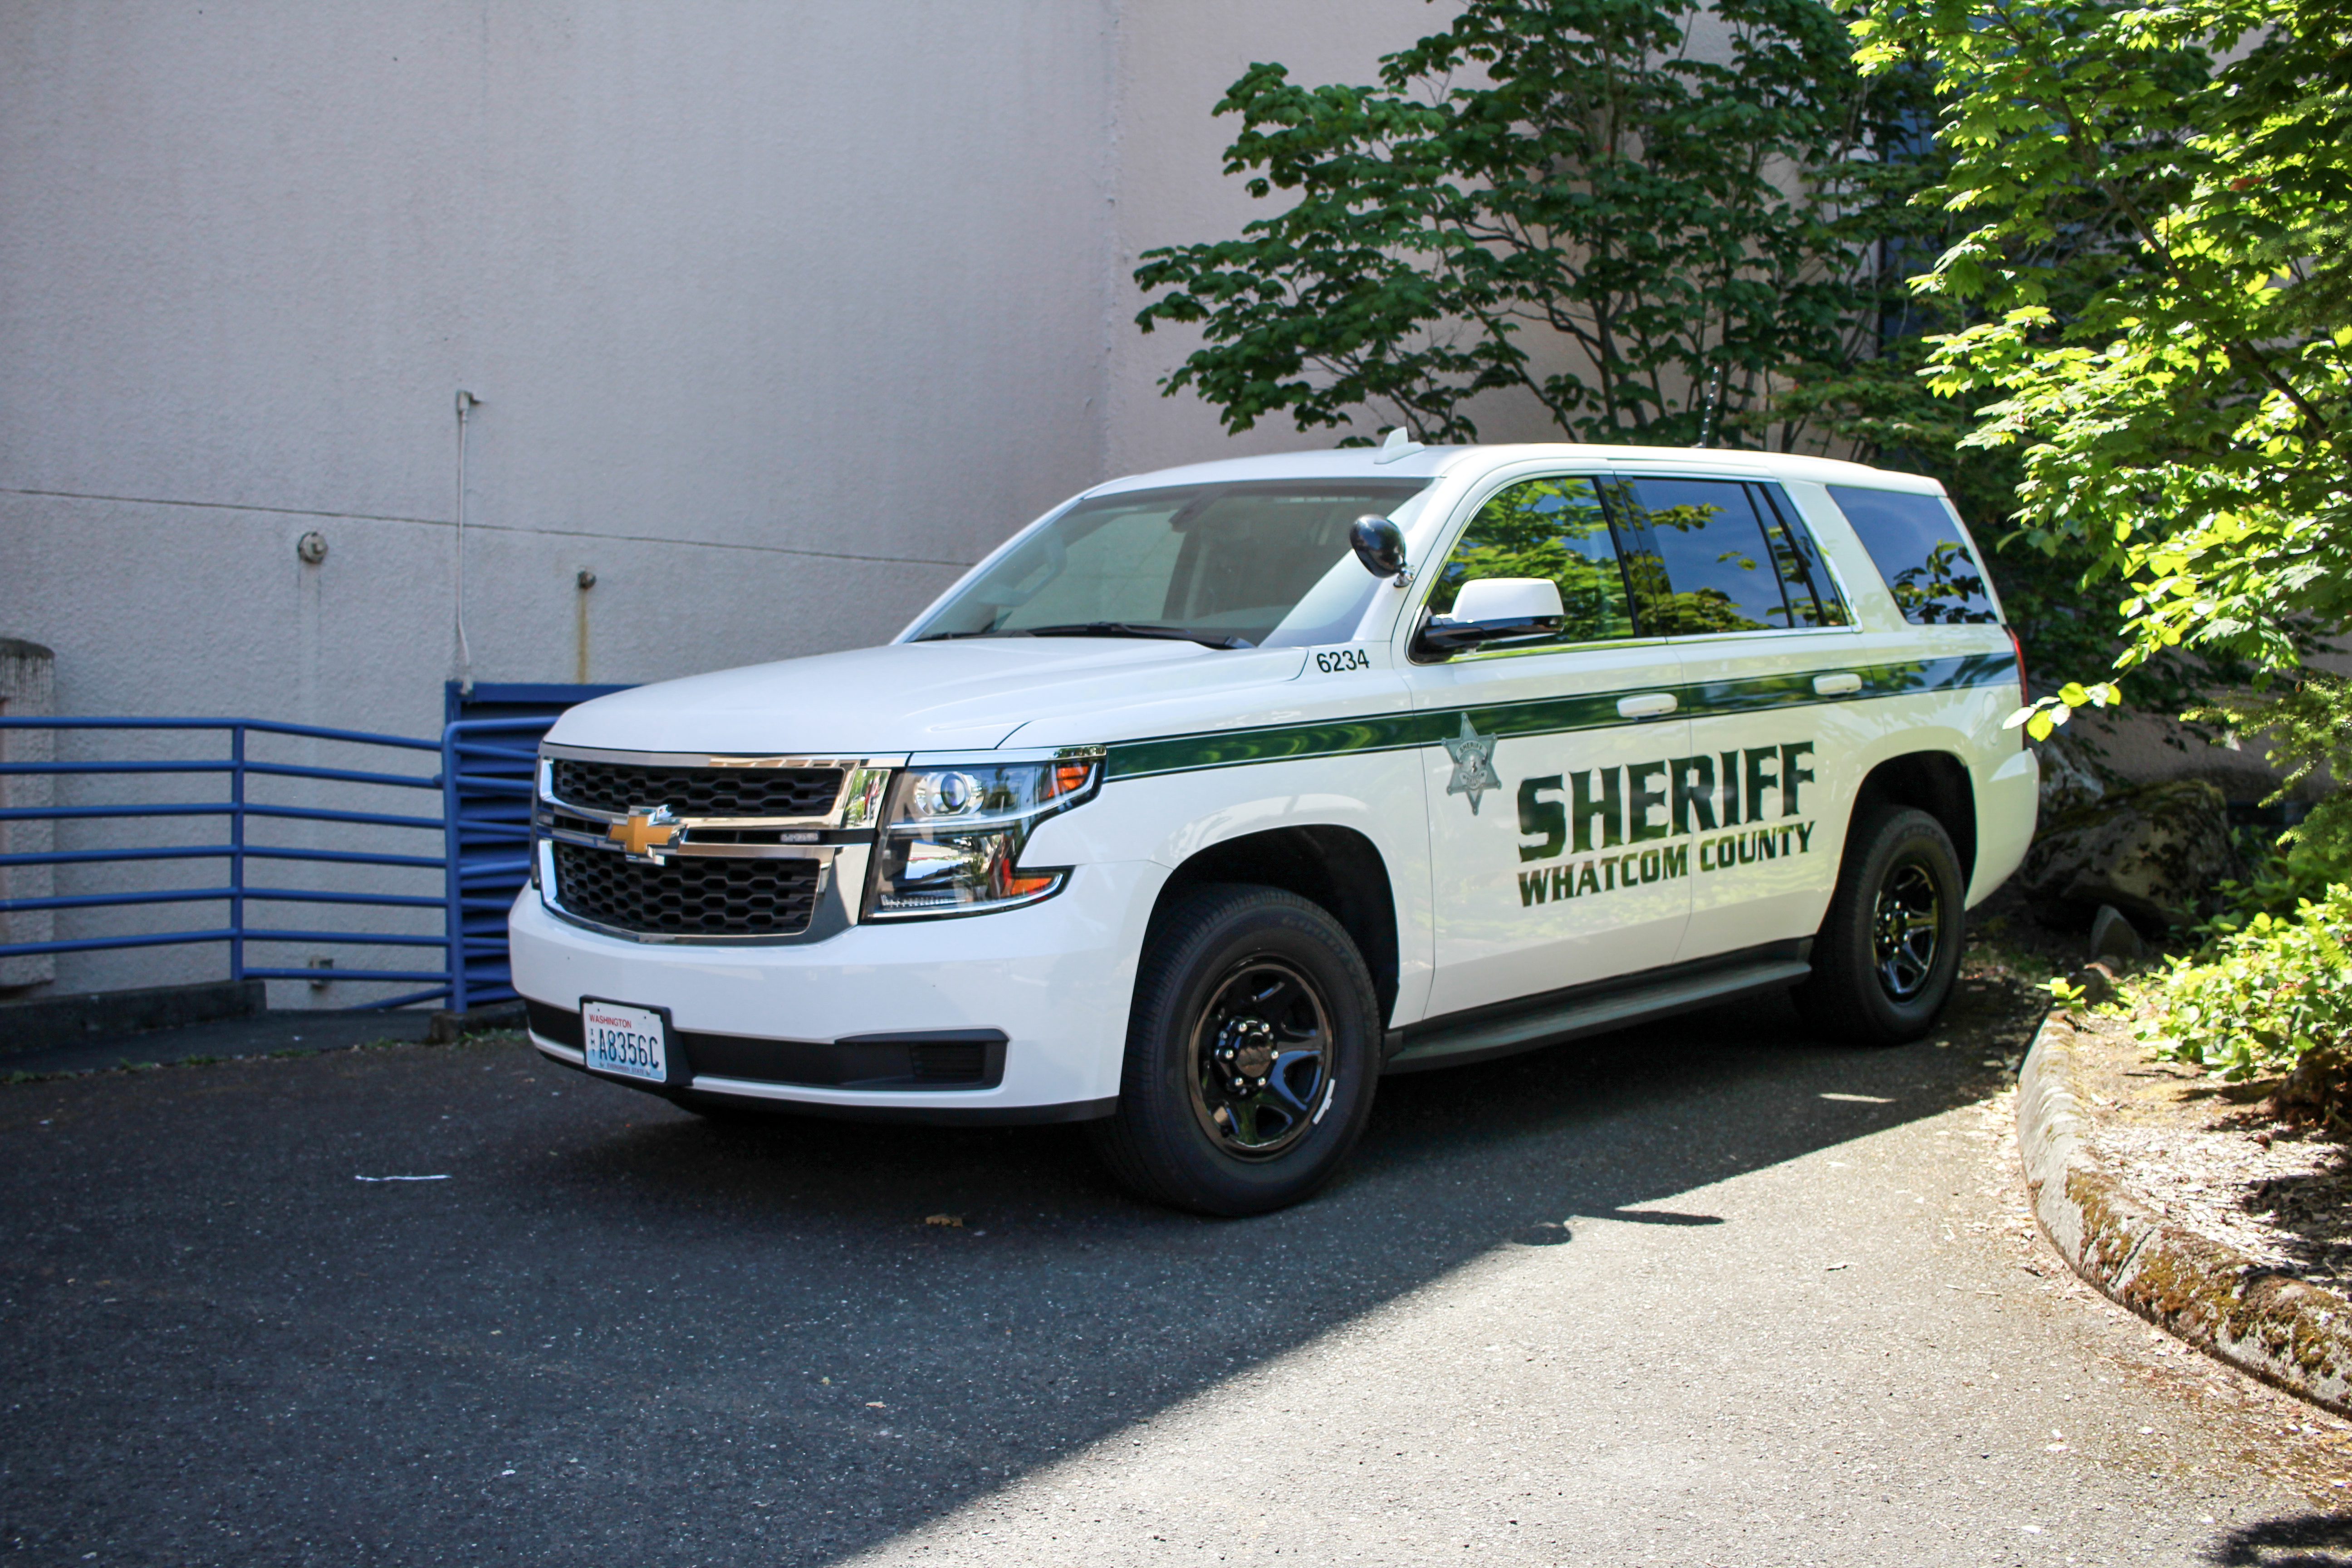 Whatcom sheriff new slicktop 2015 chevrolet tahoe (6234) photo